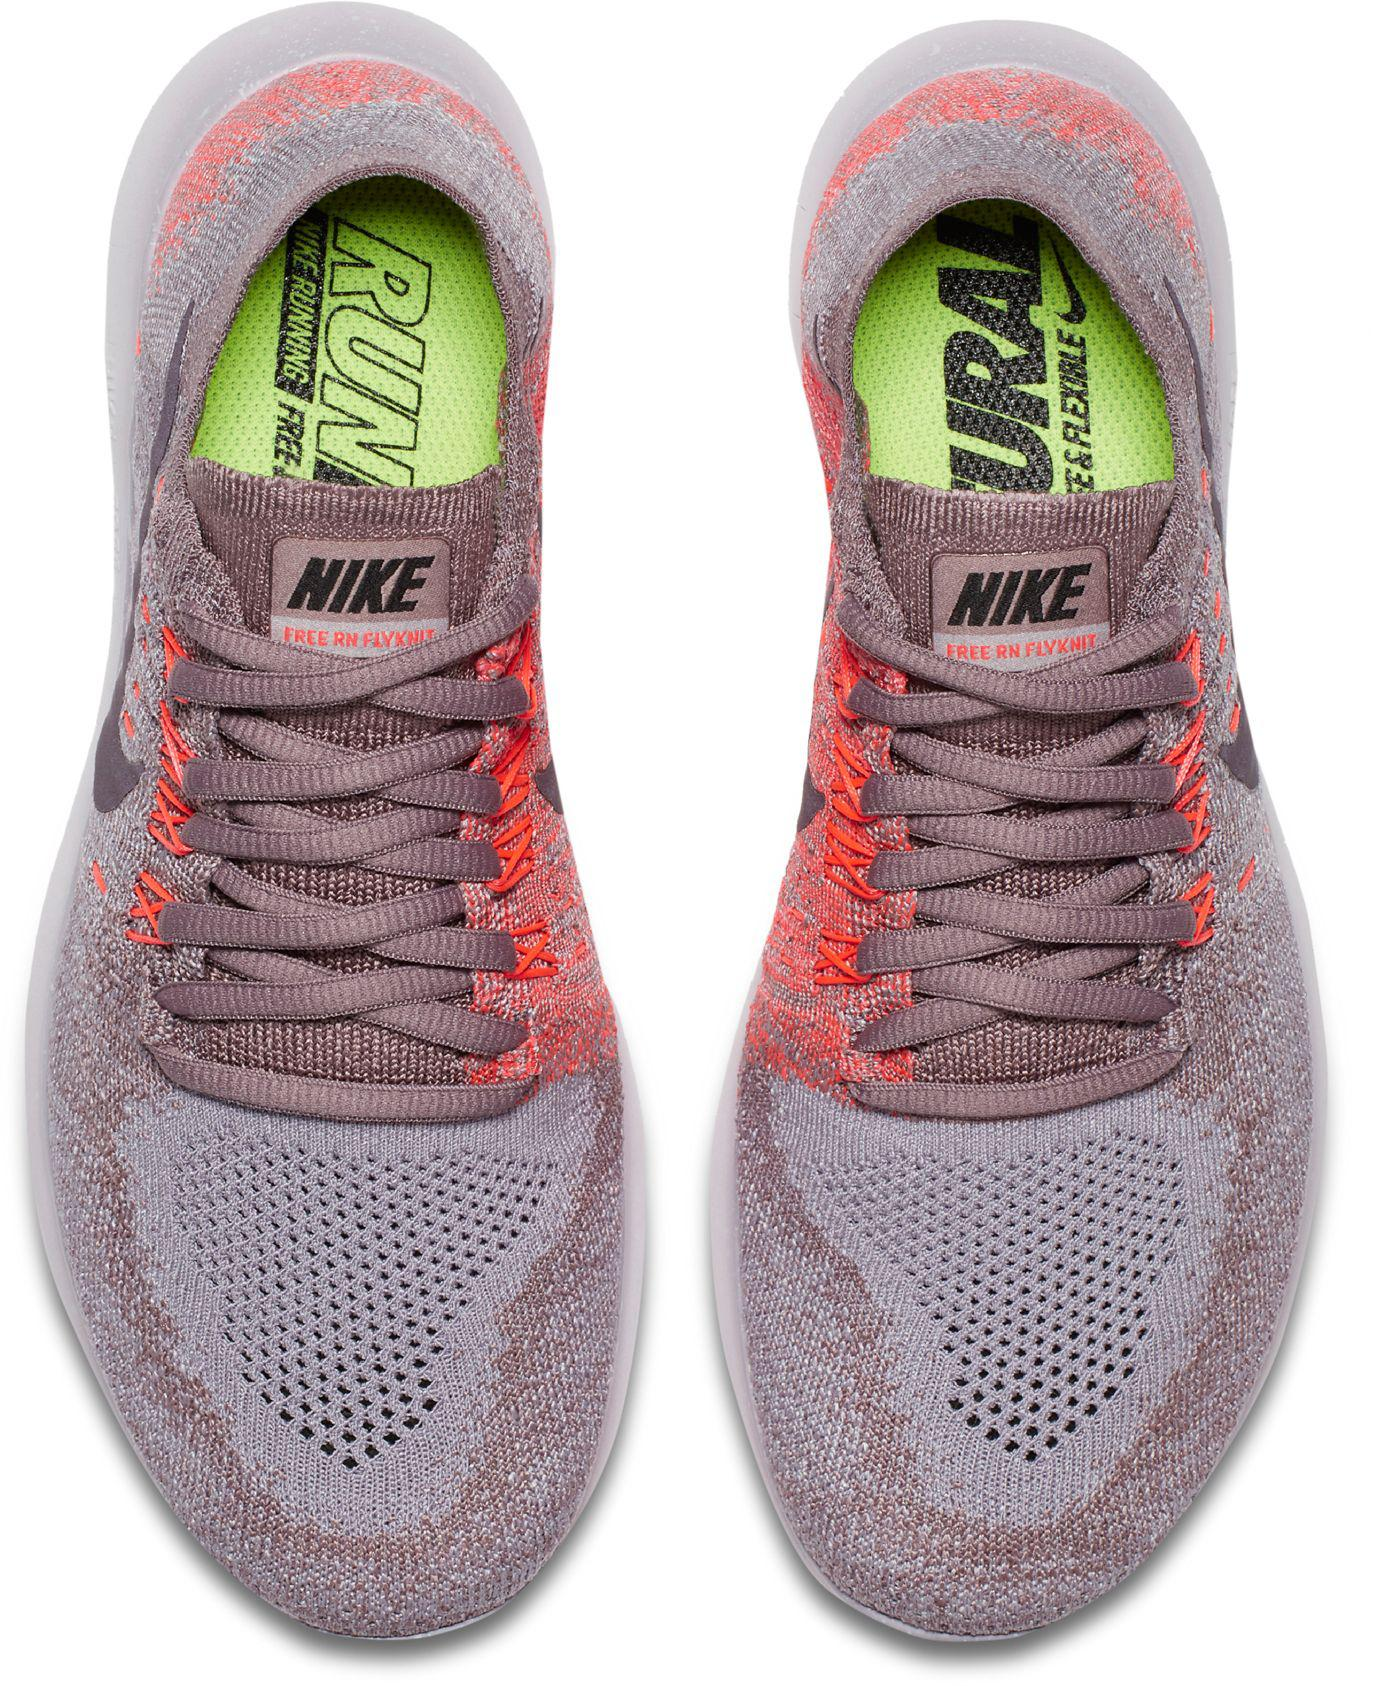 uk availability 80a79 d4f47 Nike - Multicolor Free Rn Flyknit 2017 Running Shoes - Lyst